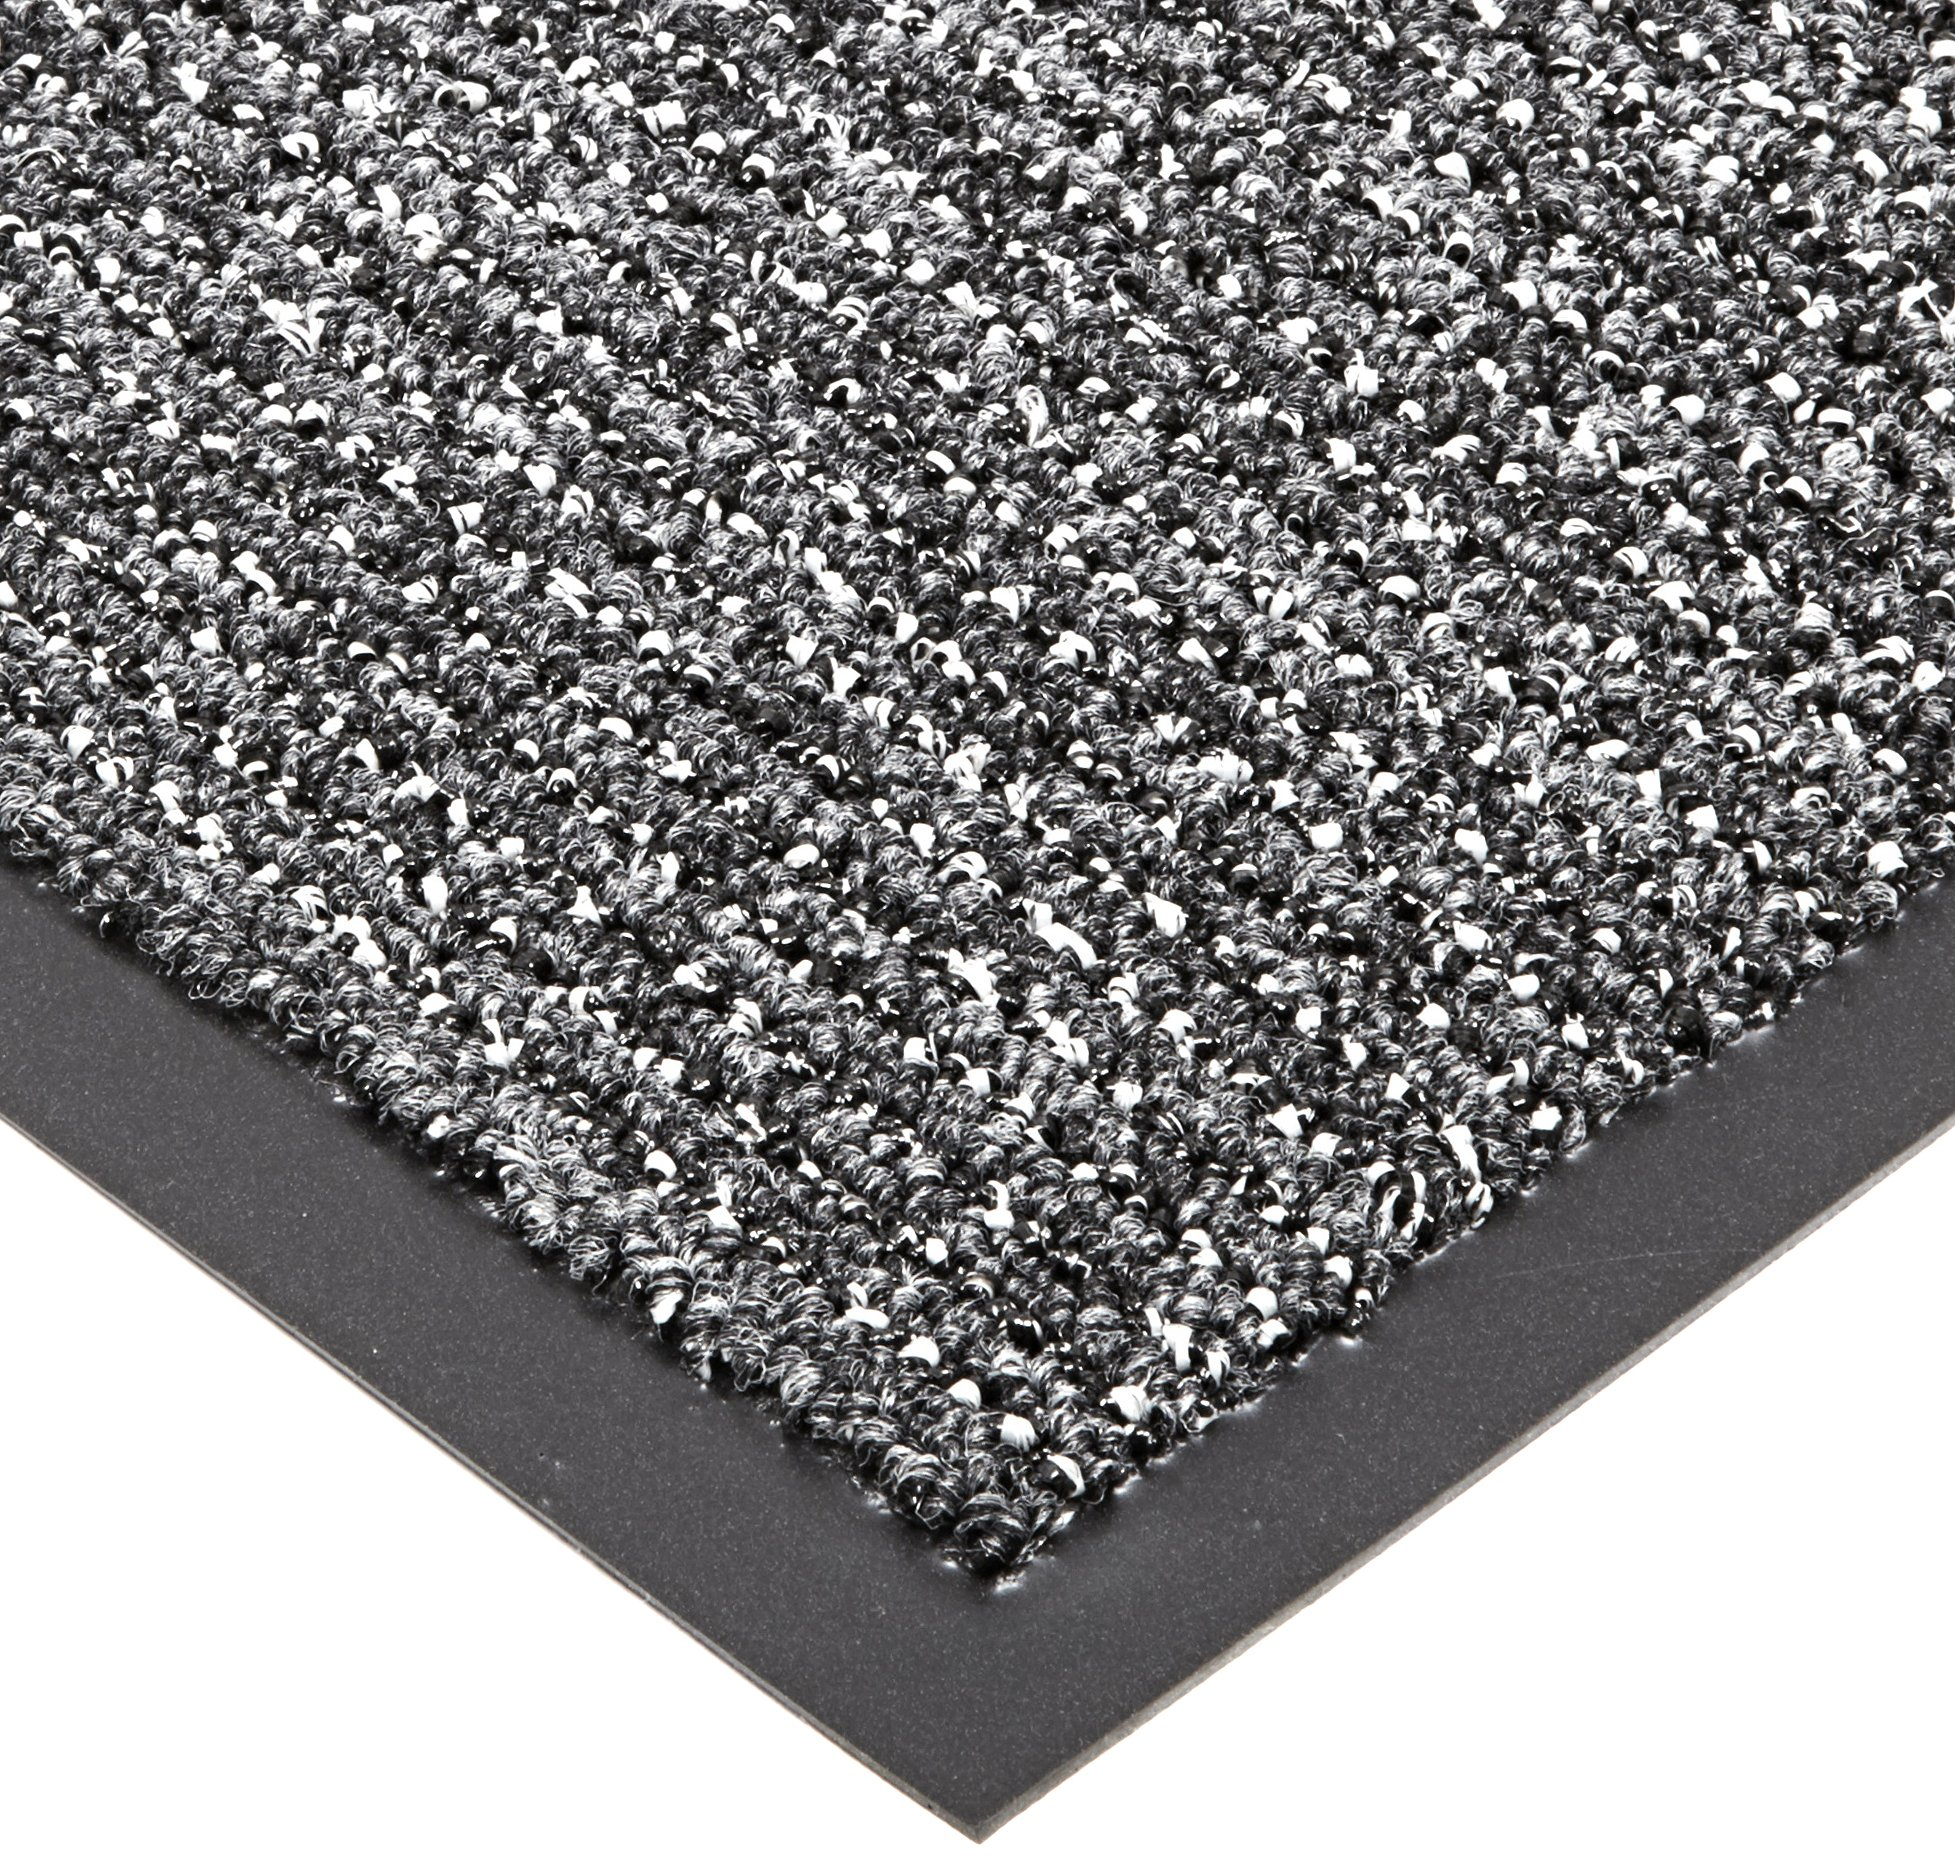 Notrax 146 Encore Entrance Mat, for Inside Foyer Area, 3' Width x 10' Length x 5/16'' Thickness, Gray